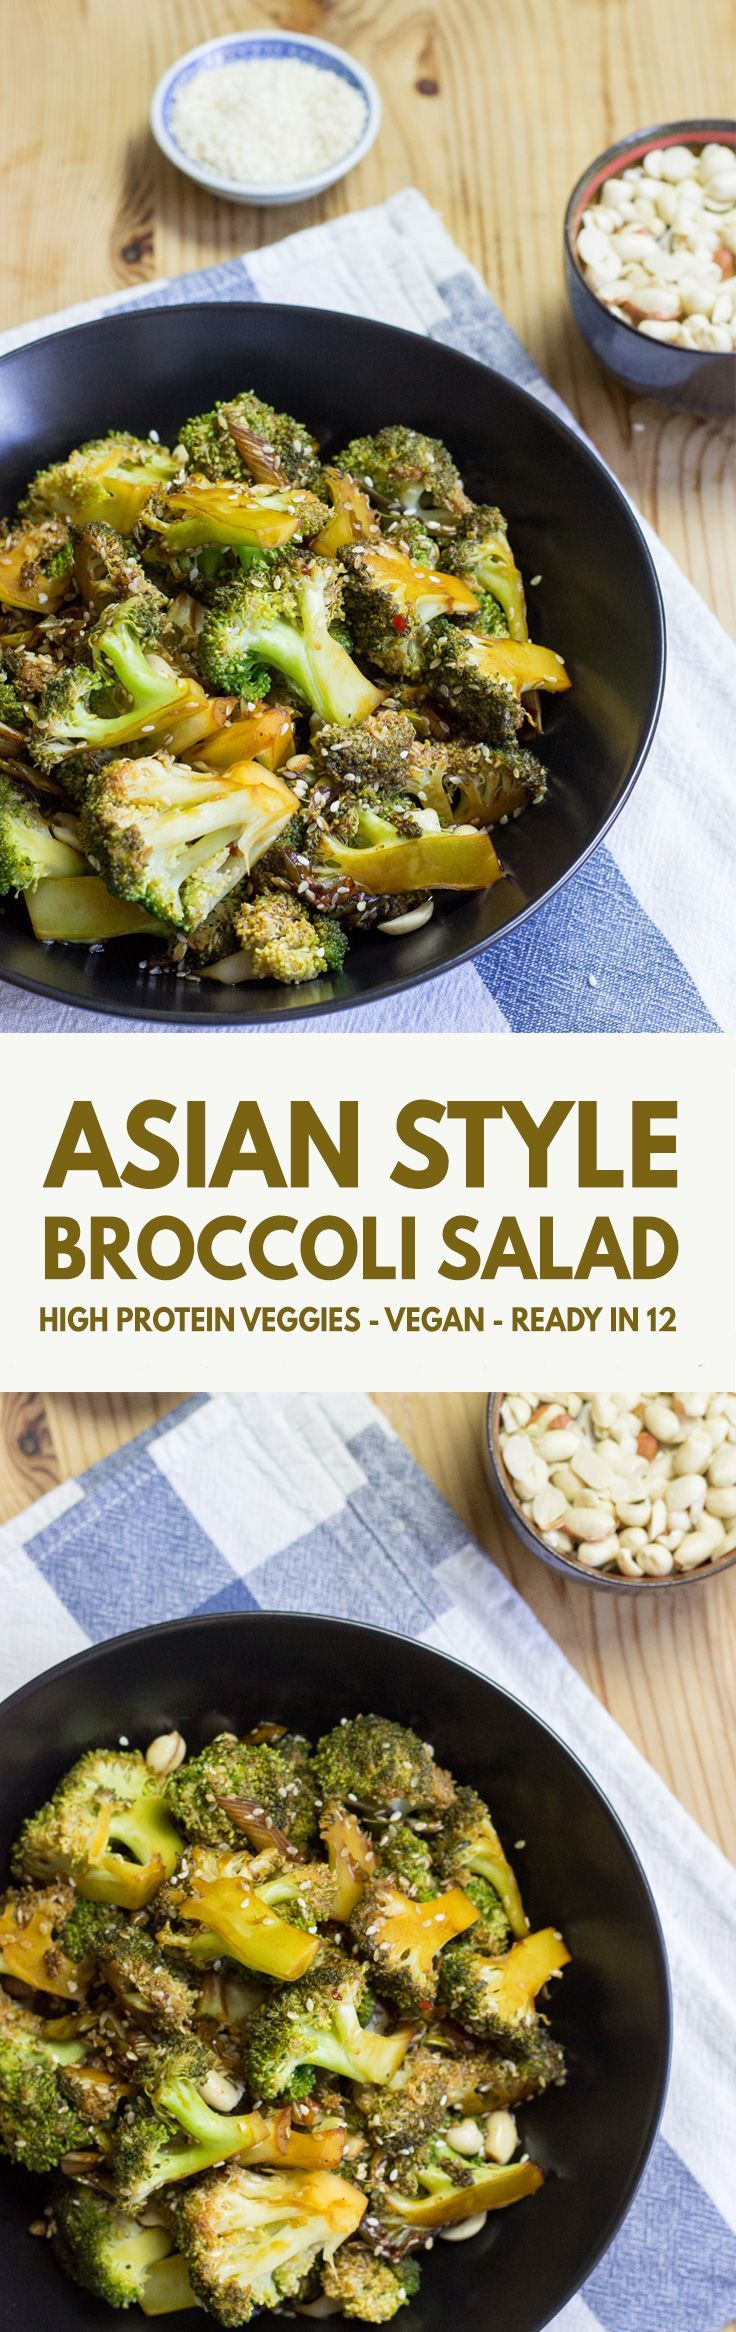 Vegan Broccoli Salad – High